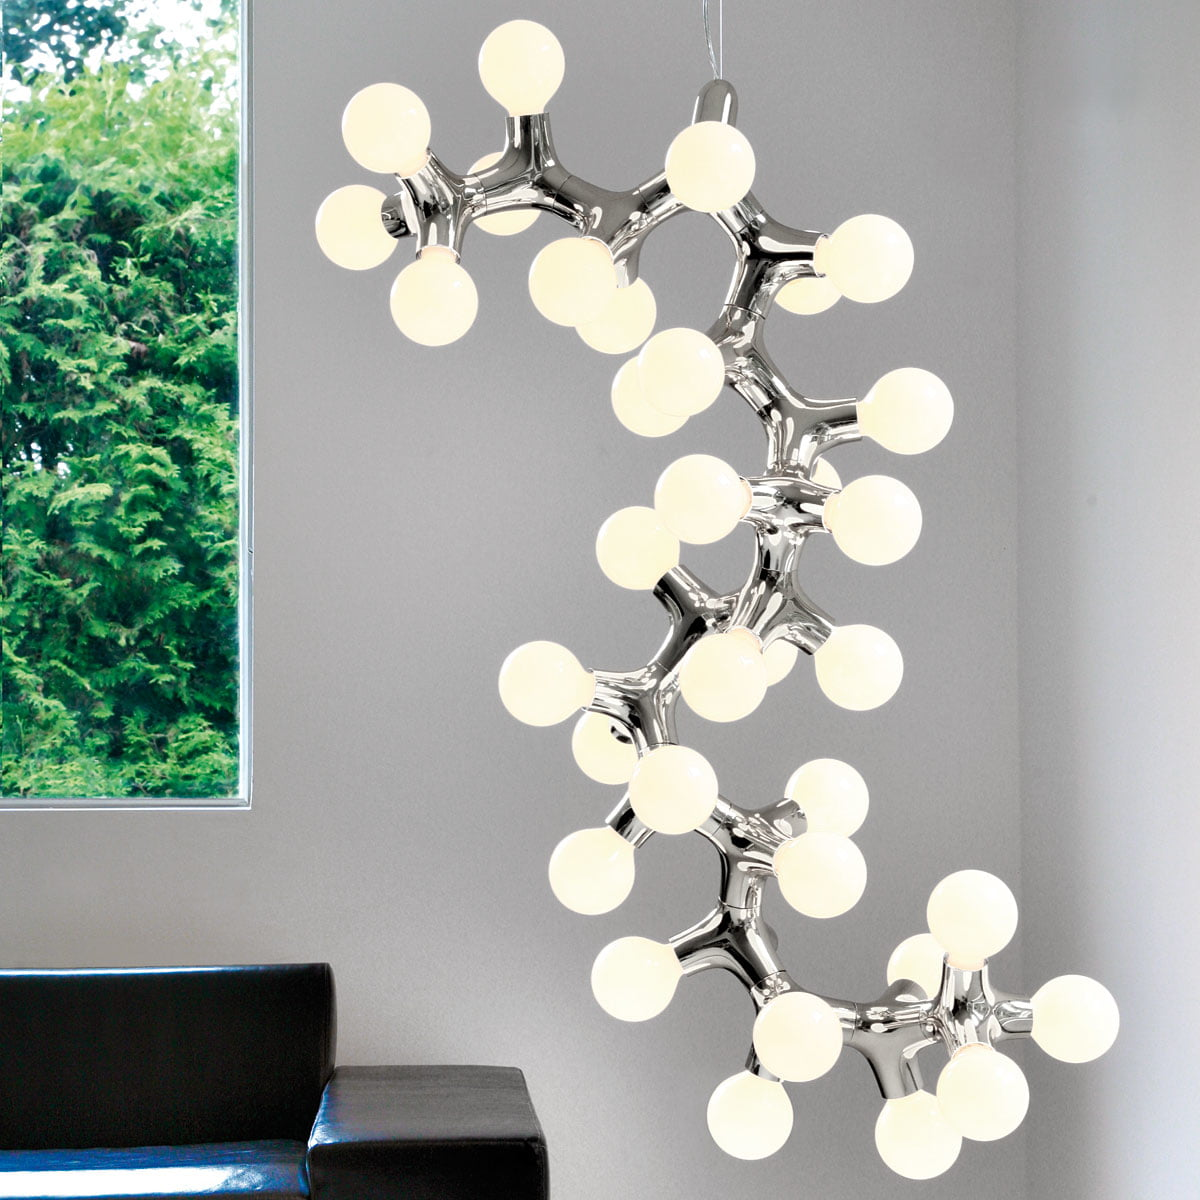 DNA Pendant Lamp By Hopf Wortmann For Next - Individual pendant lights